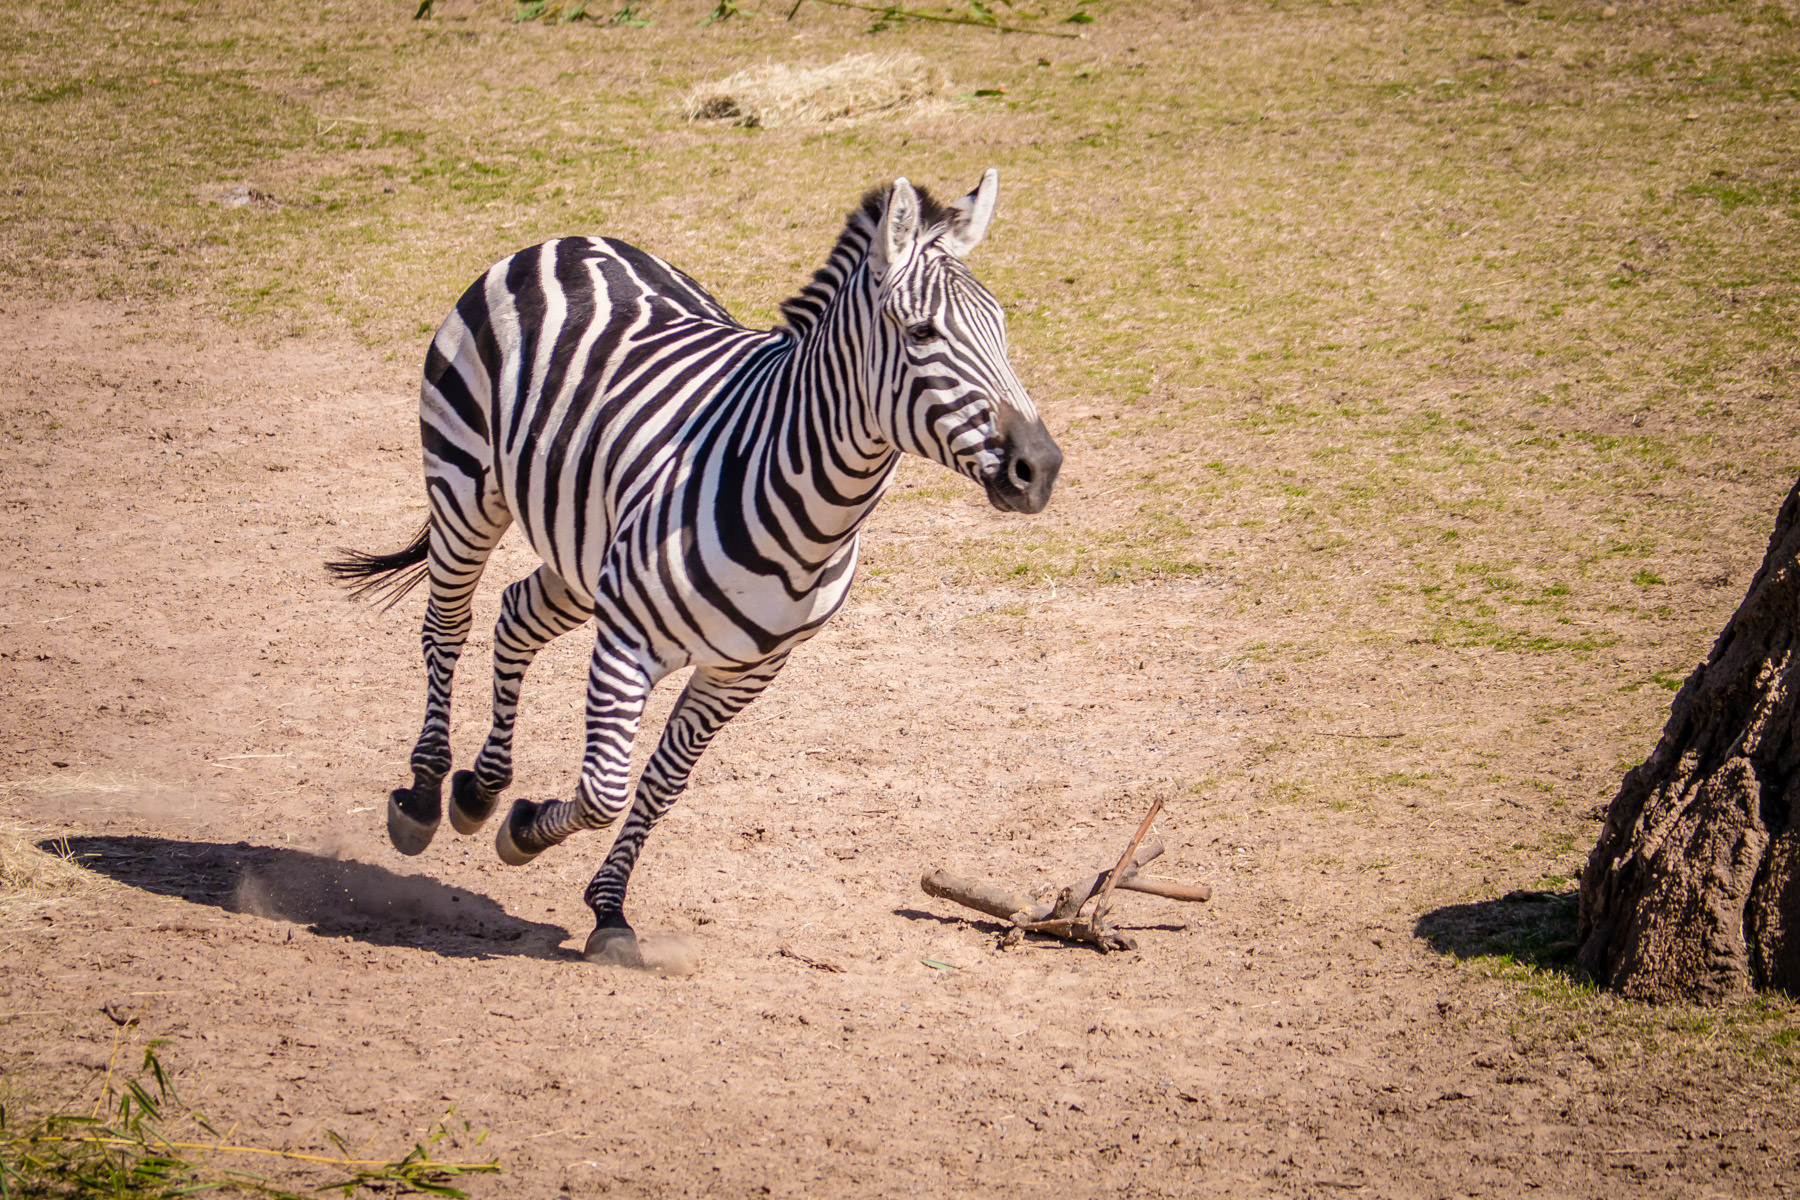 A zebra at the Dallas Zoo runs through his habitat.